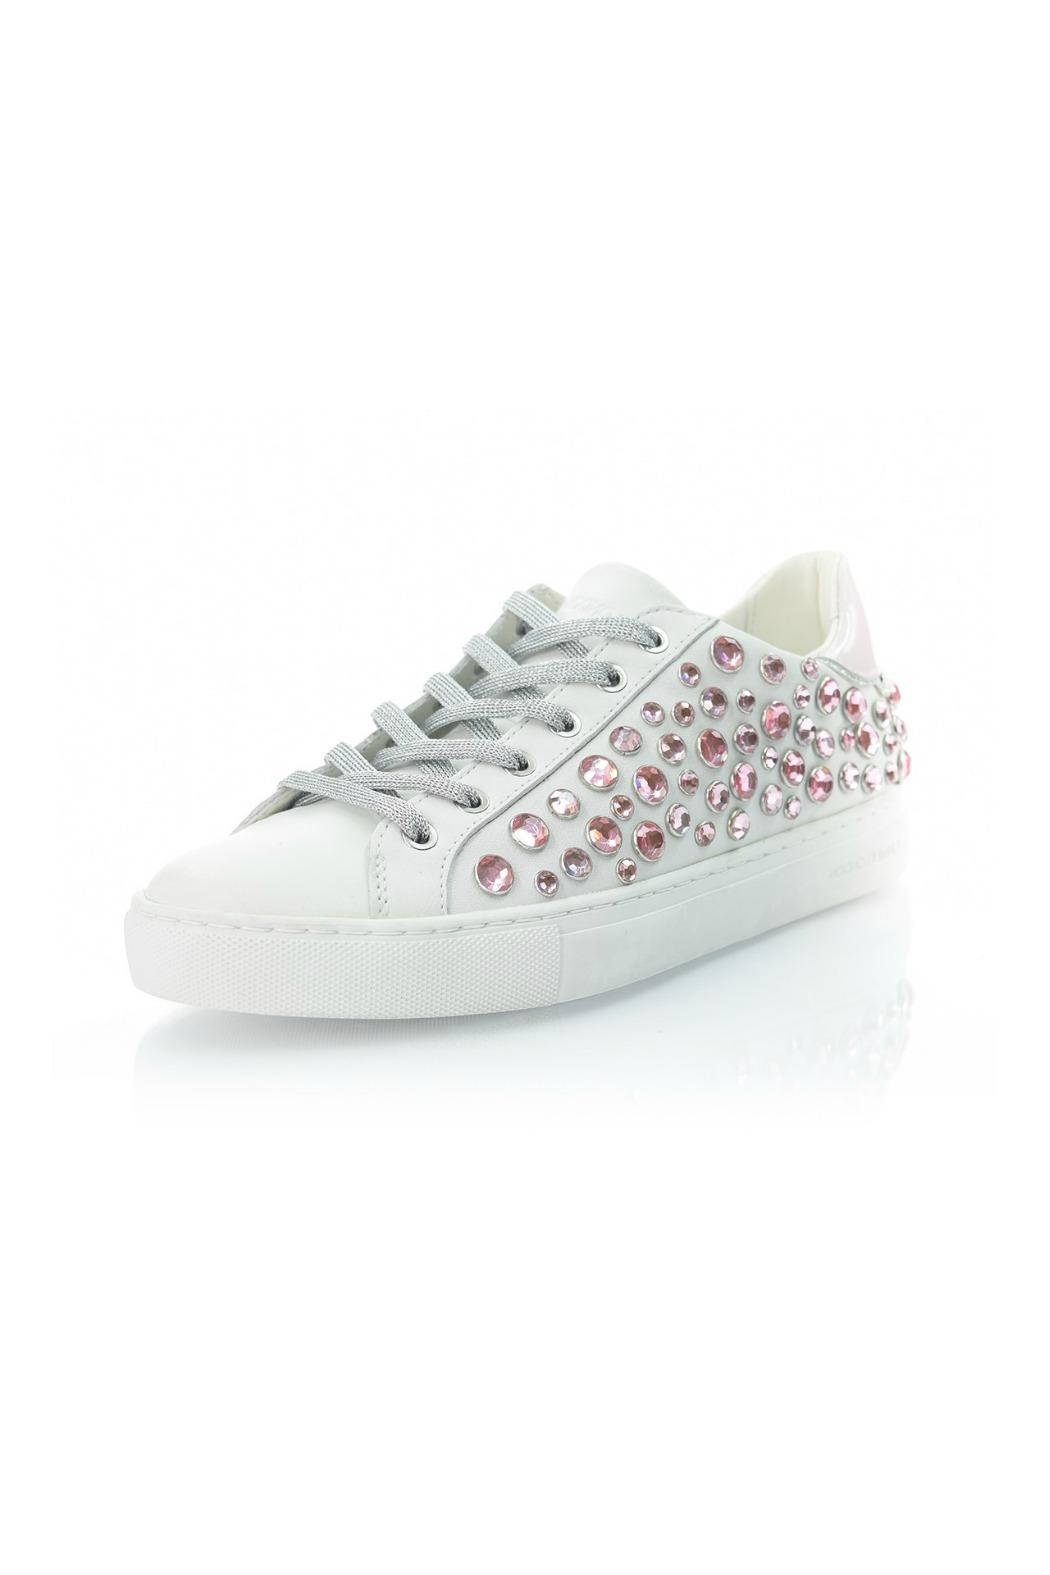 Crime London Pink Rhinestone Sneaker - Main Image